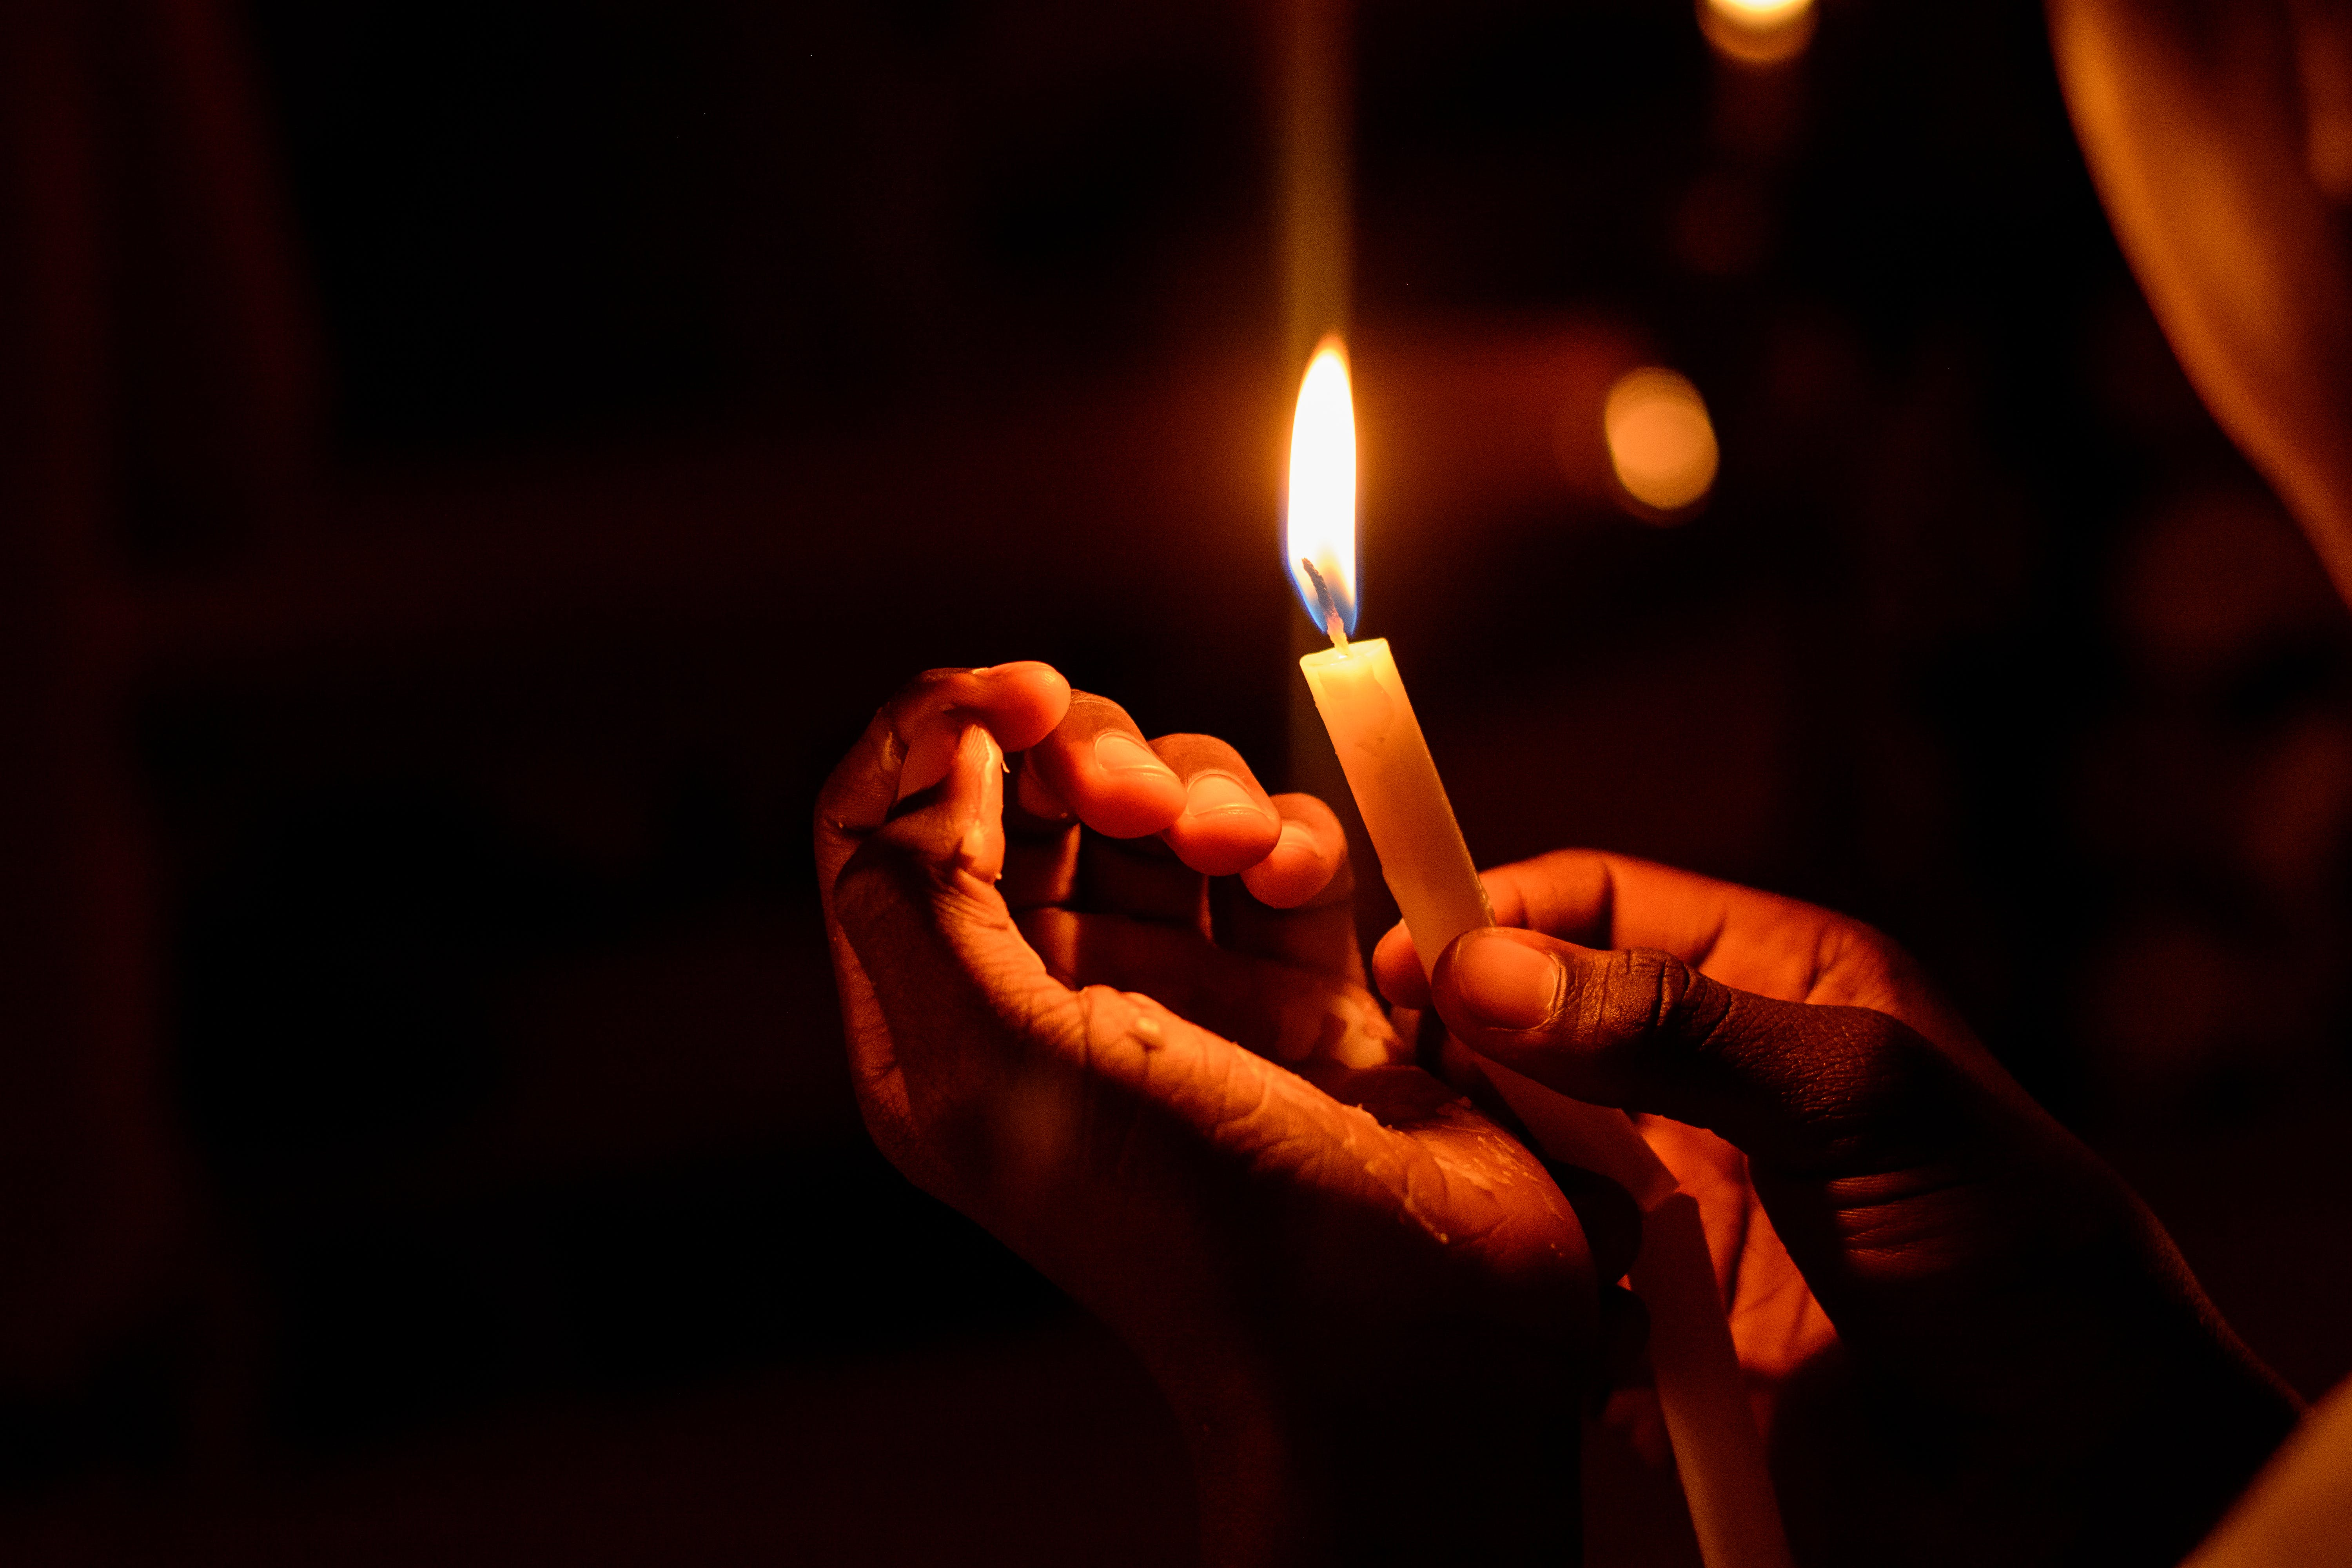 Person Holding Lighted Candle